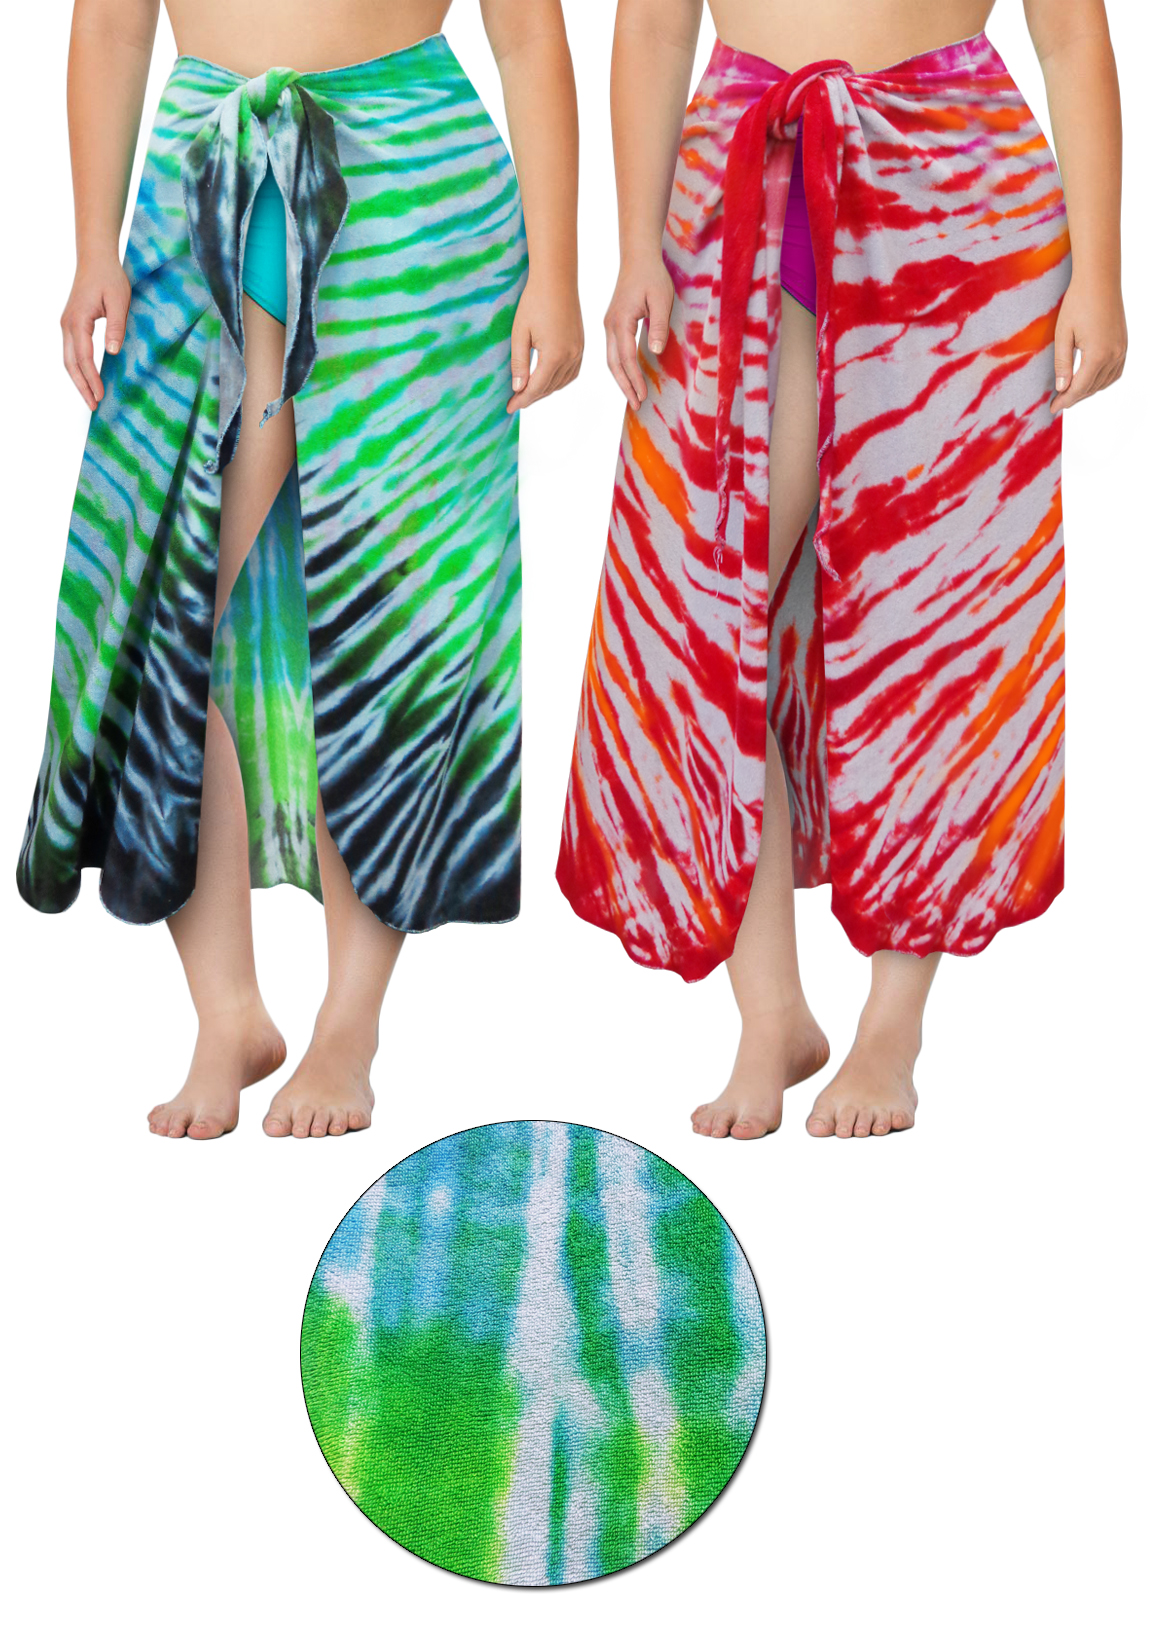 1f1f9a5534b34 Terry Fabric Tie Dye Plus Size Sarong - Swimsuit Coverup - 1x 2x 3x 4x 5x  6x 7x 8x